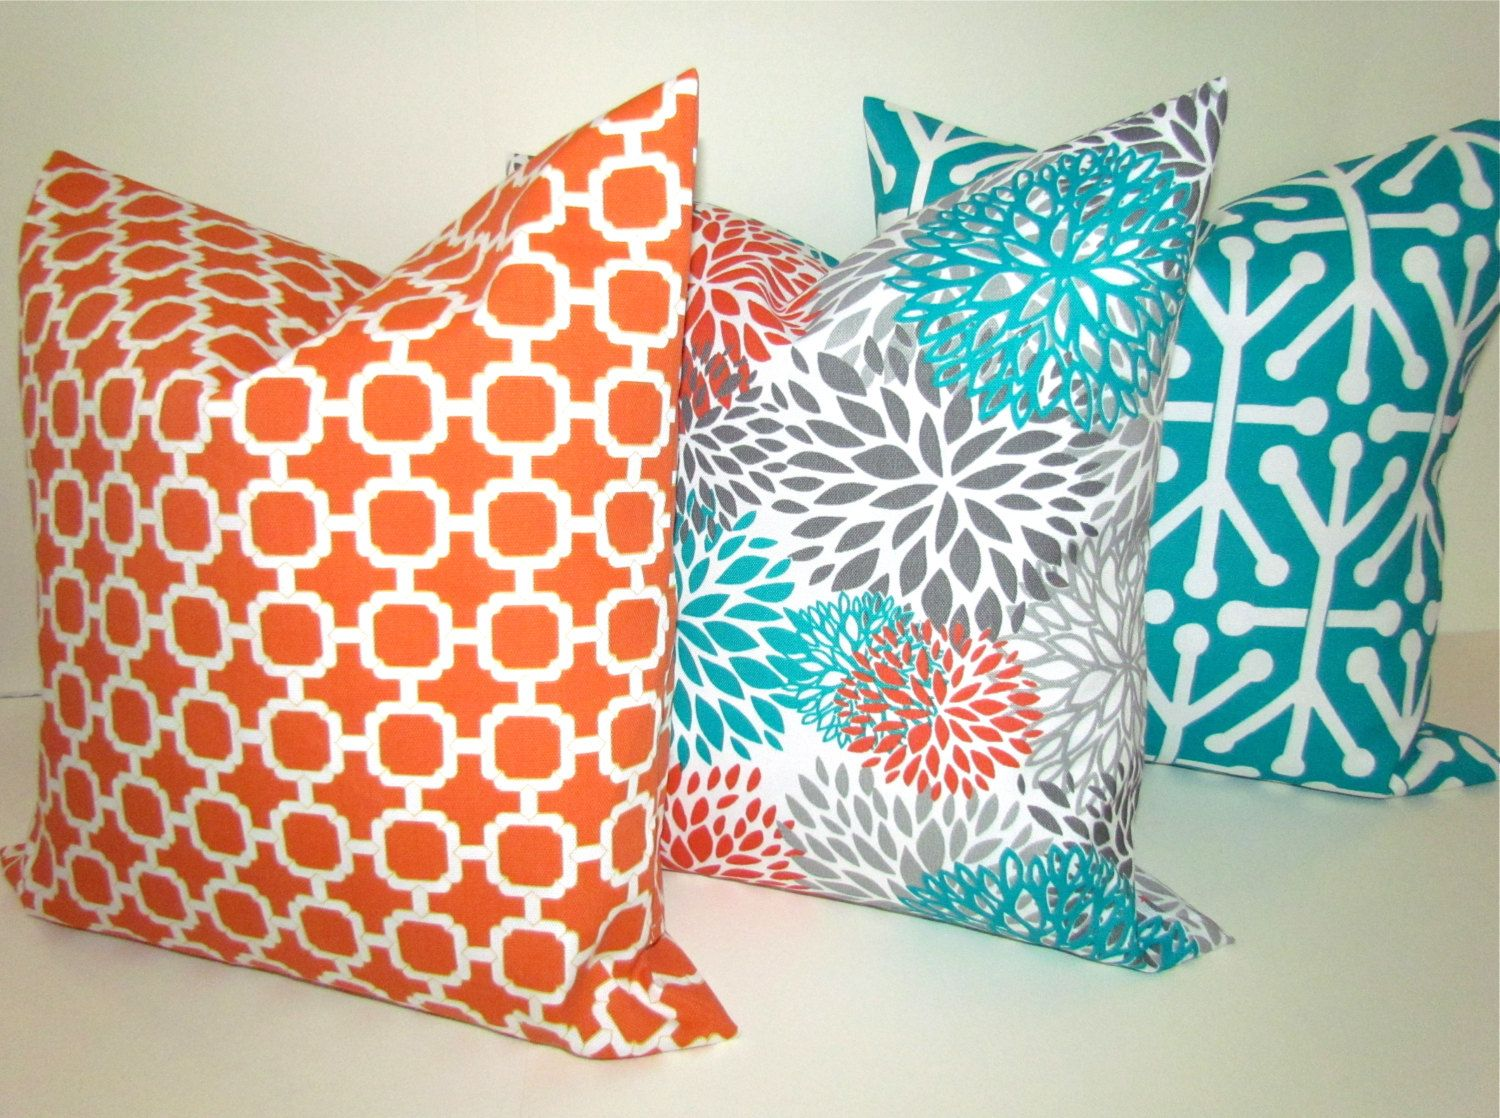 Decorative Pillow Set Pillows Set Of 2 Teal Orange Throw Pillow Covers 16 18 20x20